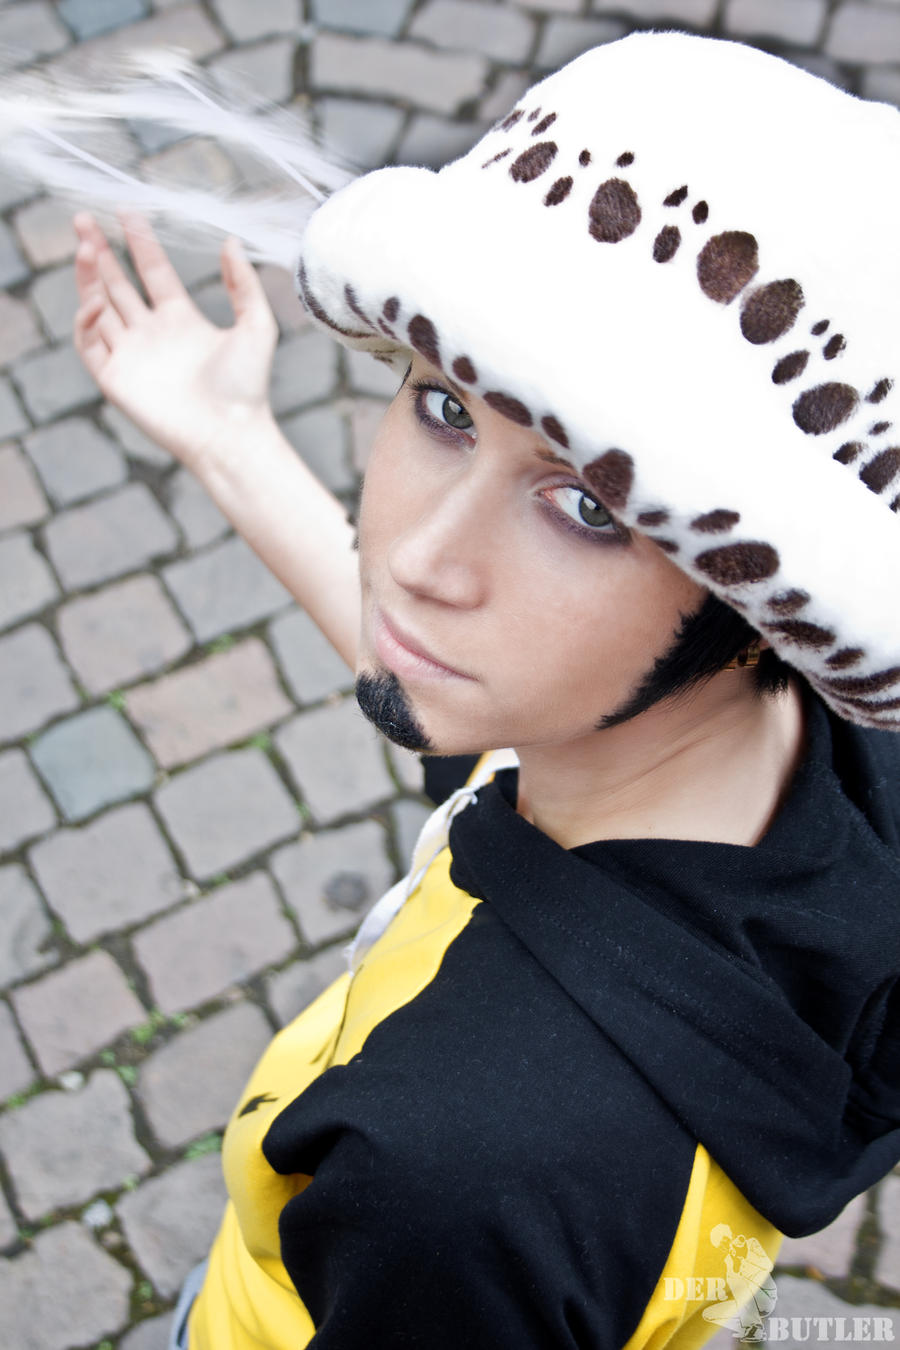 Trafalgar Law by oOButler-ChanOo on DeviantArt